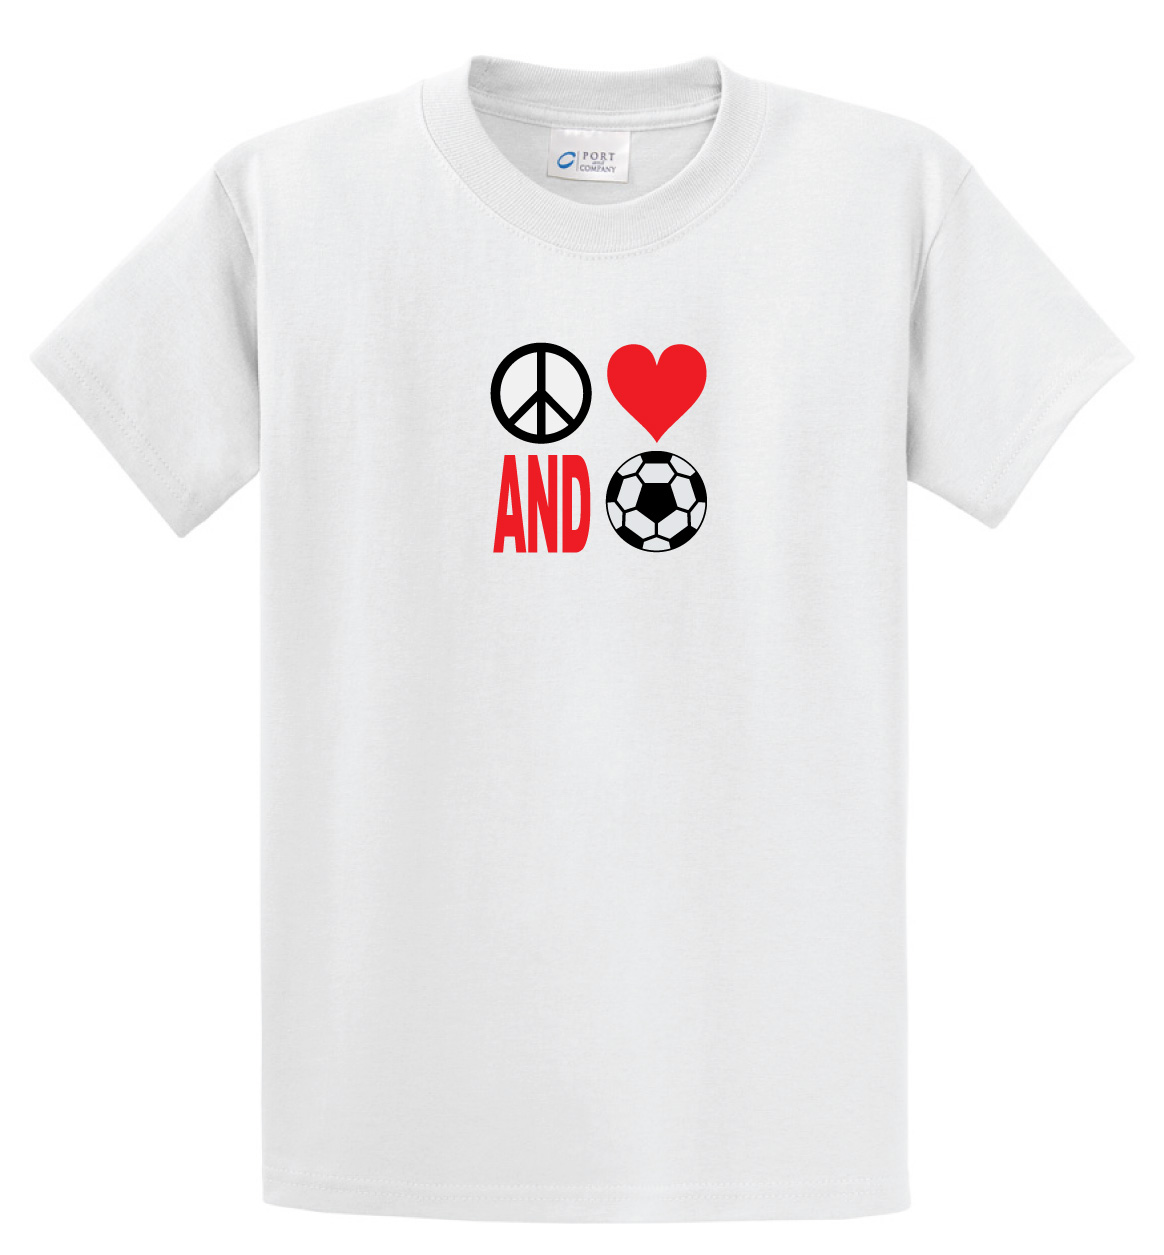 Peace Love and Soccer Tee in white by Code Four Athletics